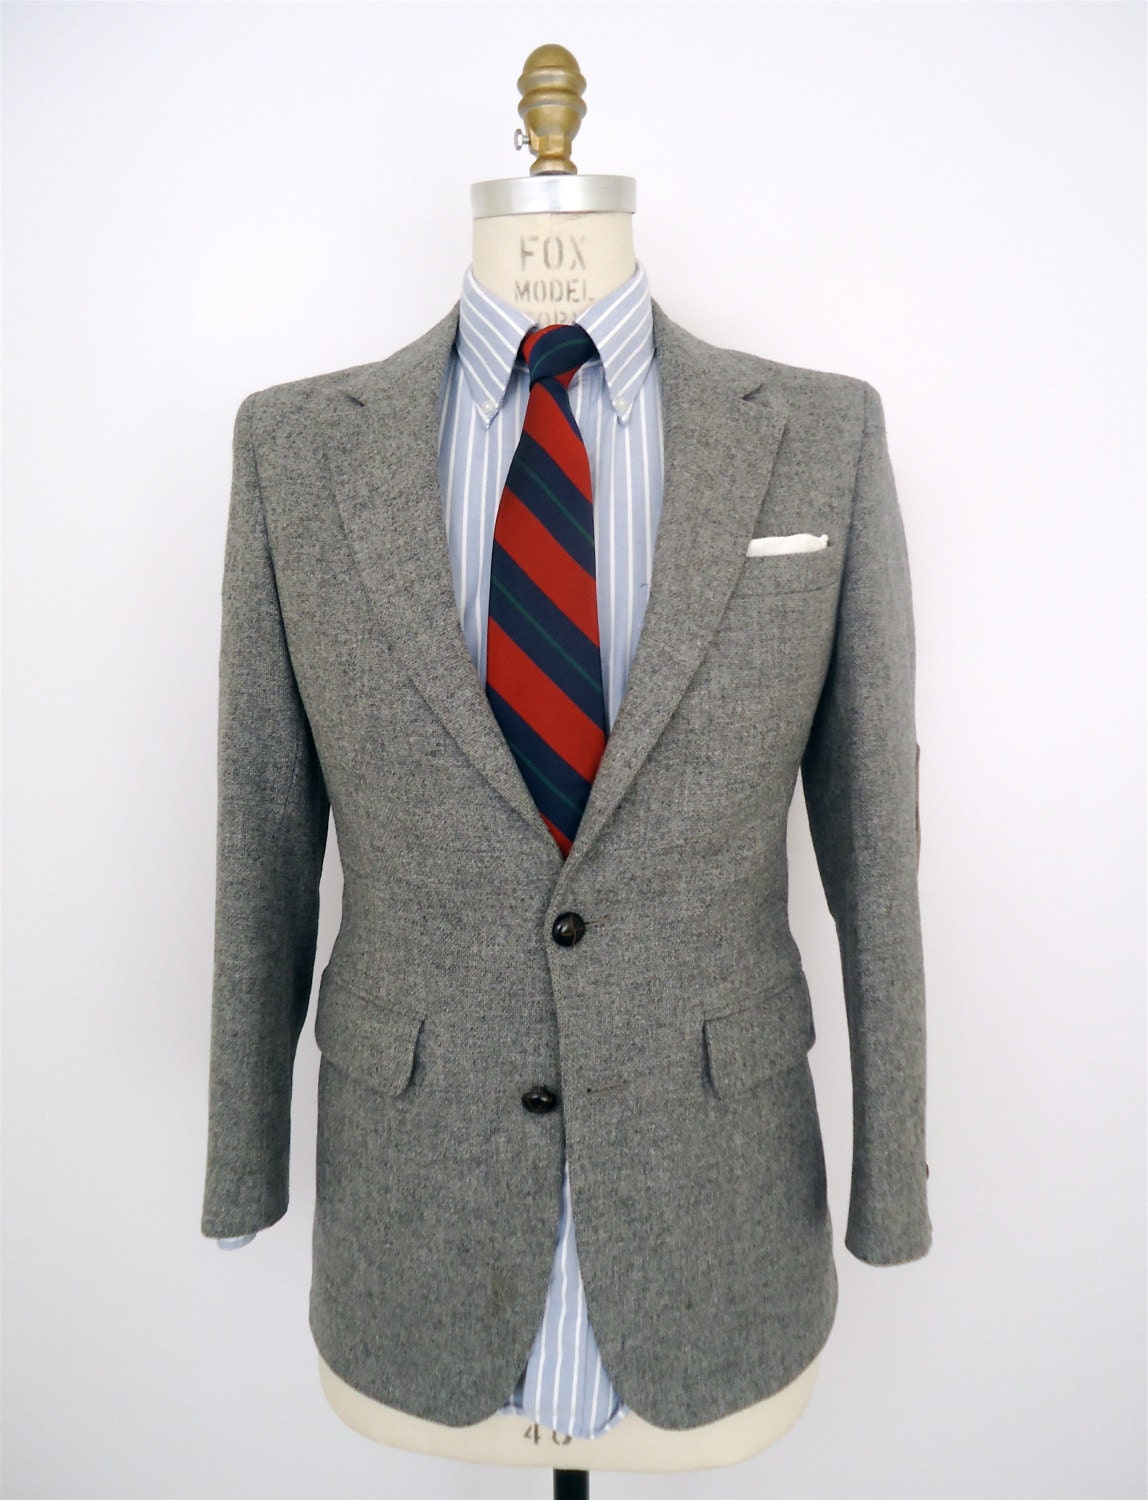 Wool sport coat with elbow patches